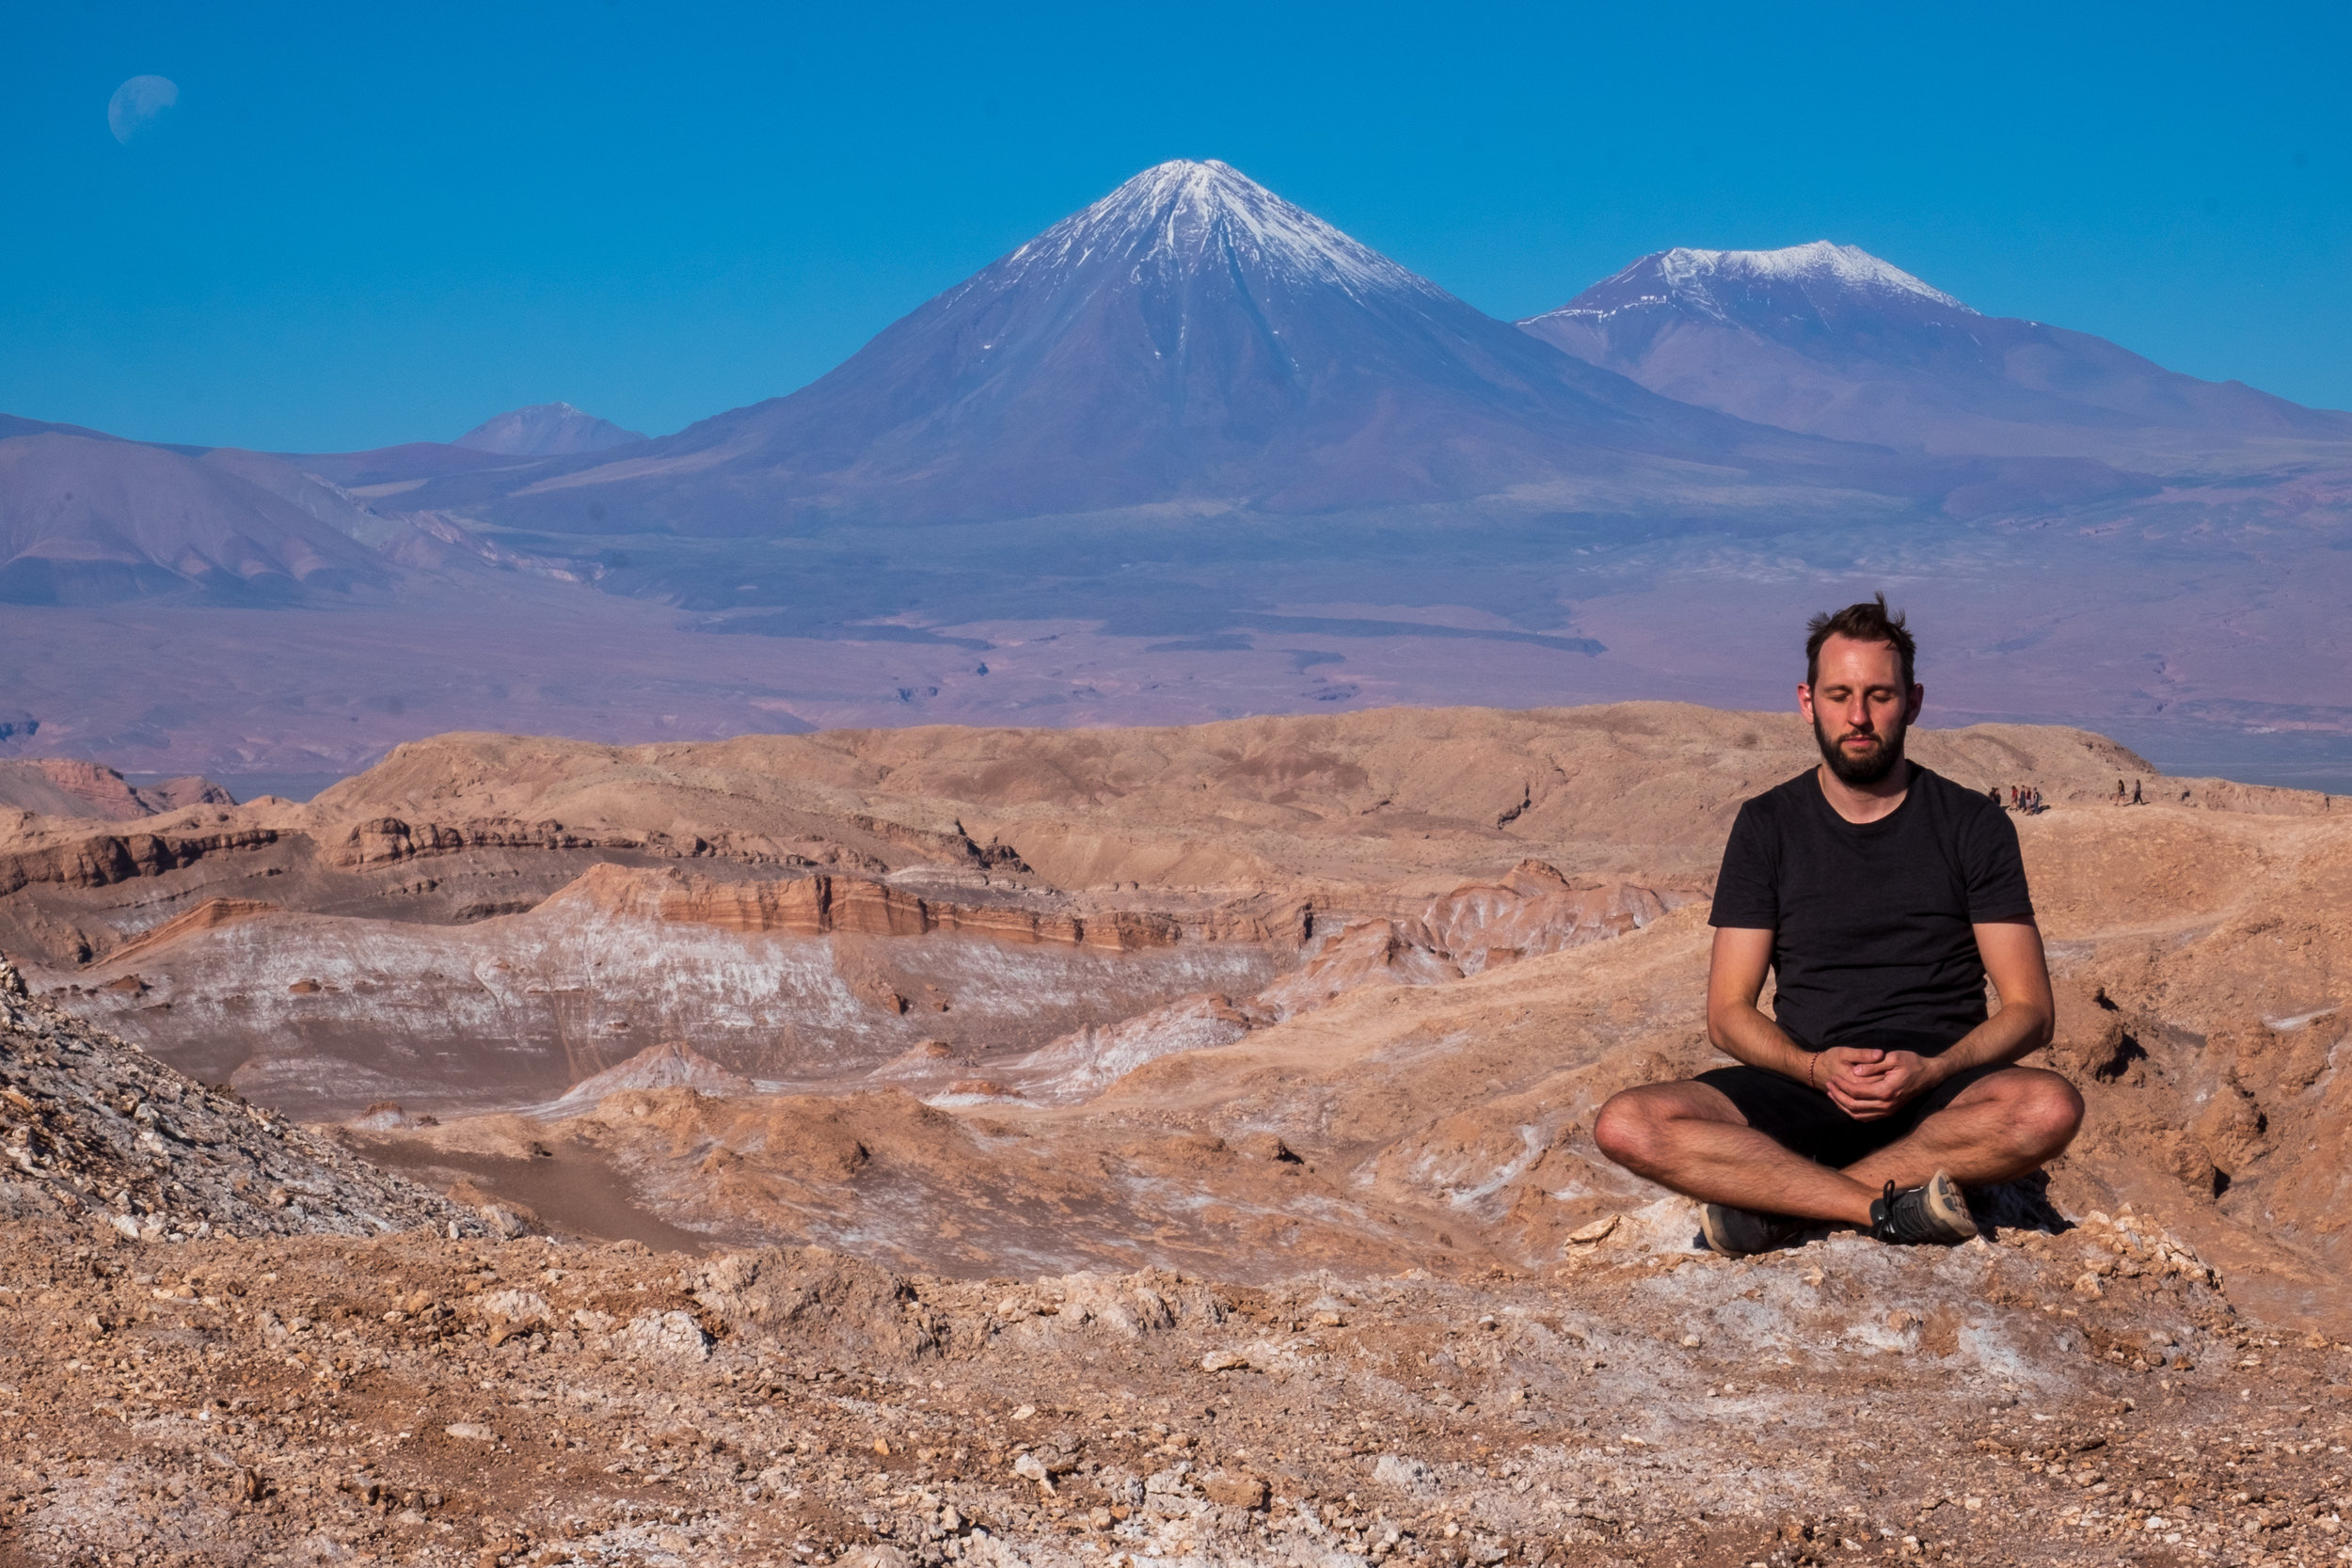 Rory meditating in the Atacama Desert in Chile with Chiliques Volcano in the background